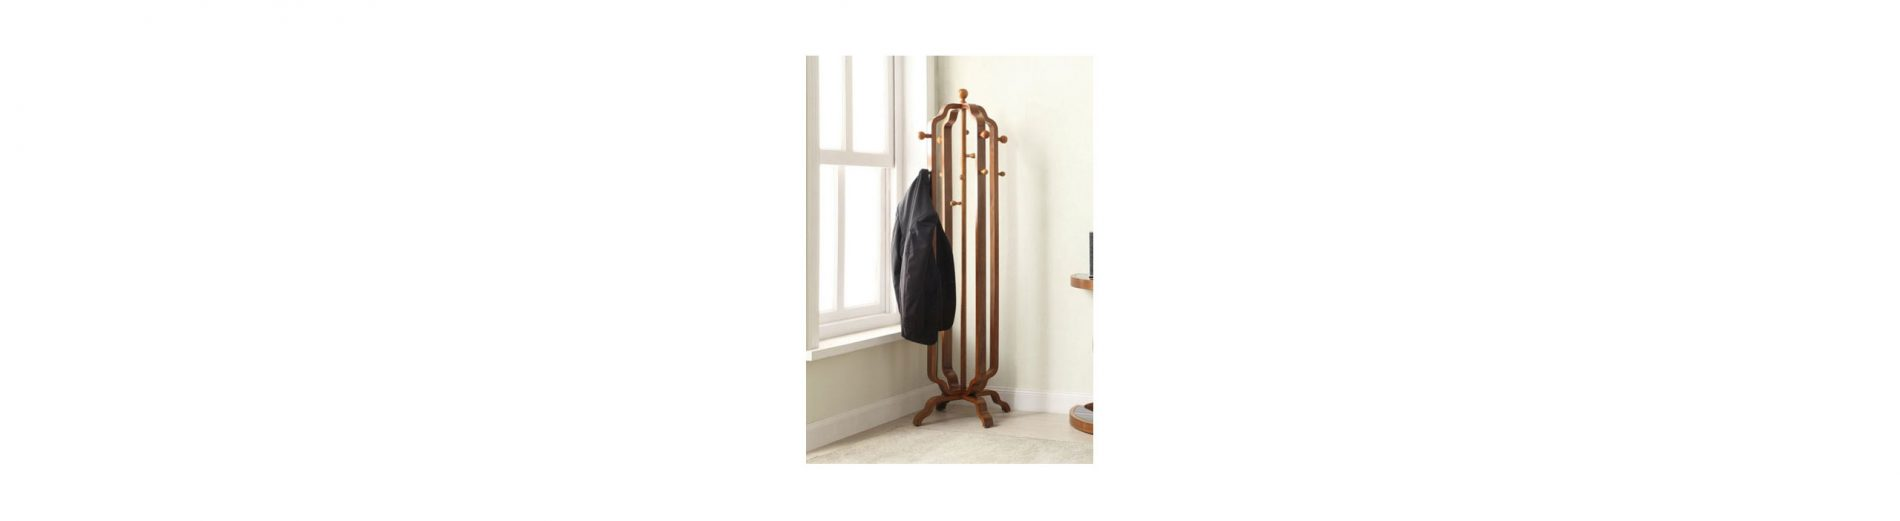 Benefits of Rotating Coat Stand